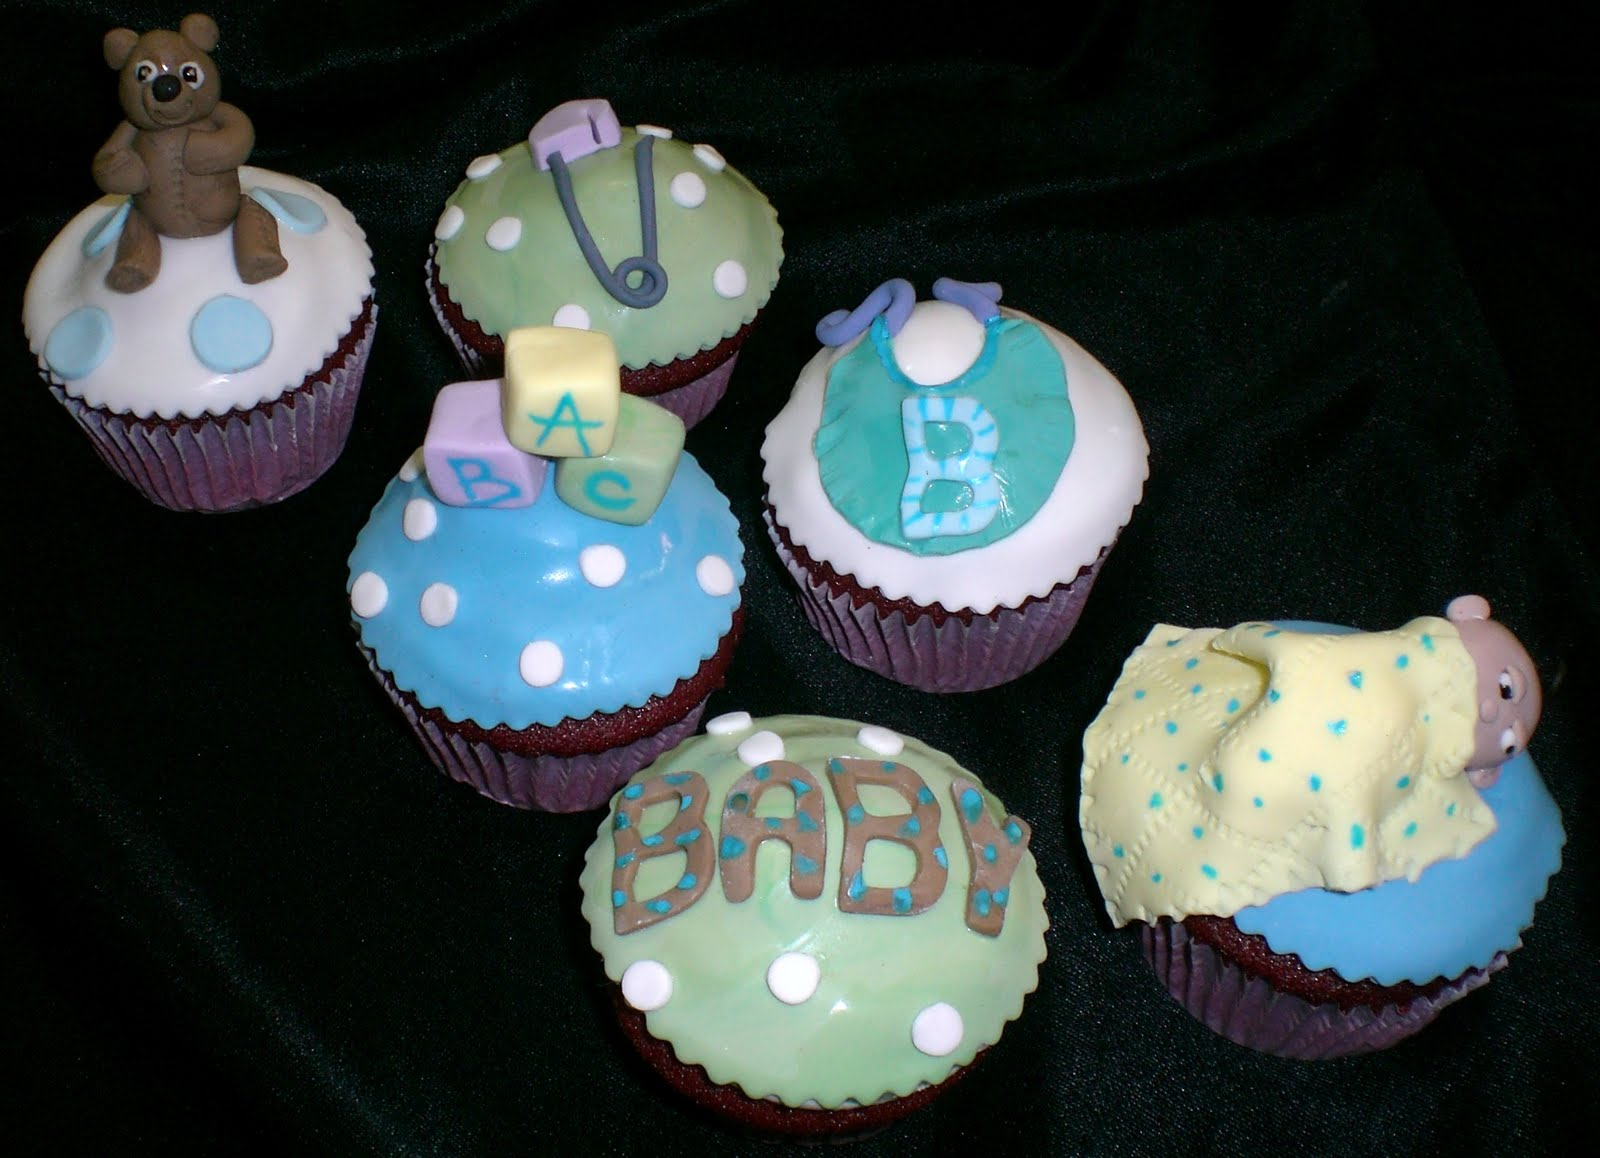 baby shower cupcakes featuring a sleeping baby teddy bear bib safety